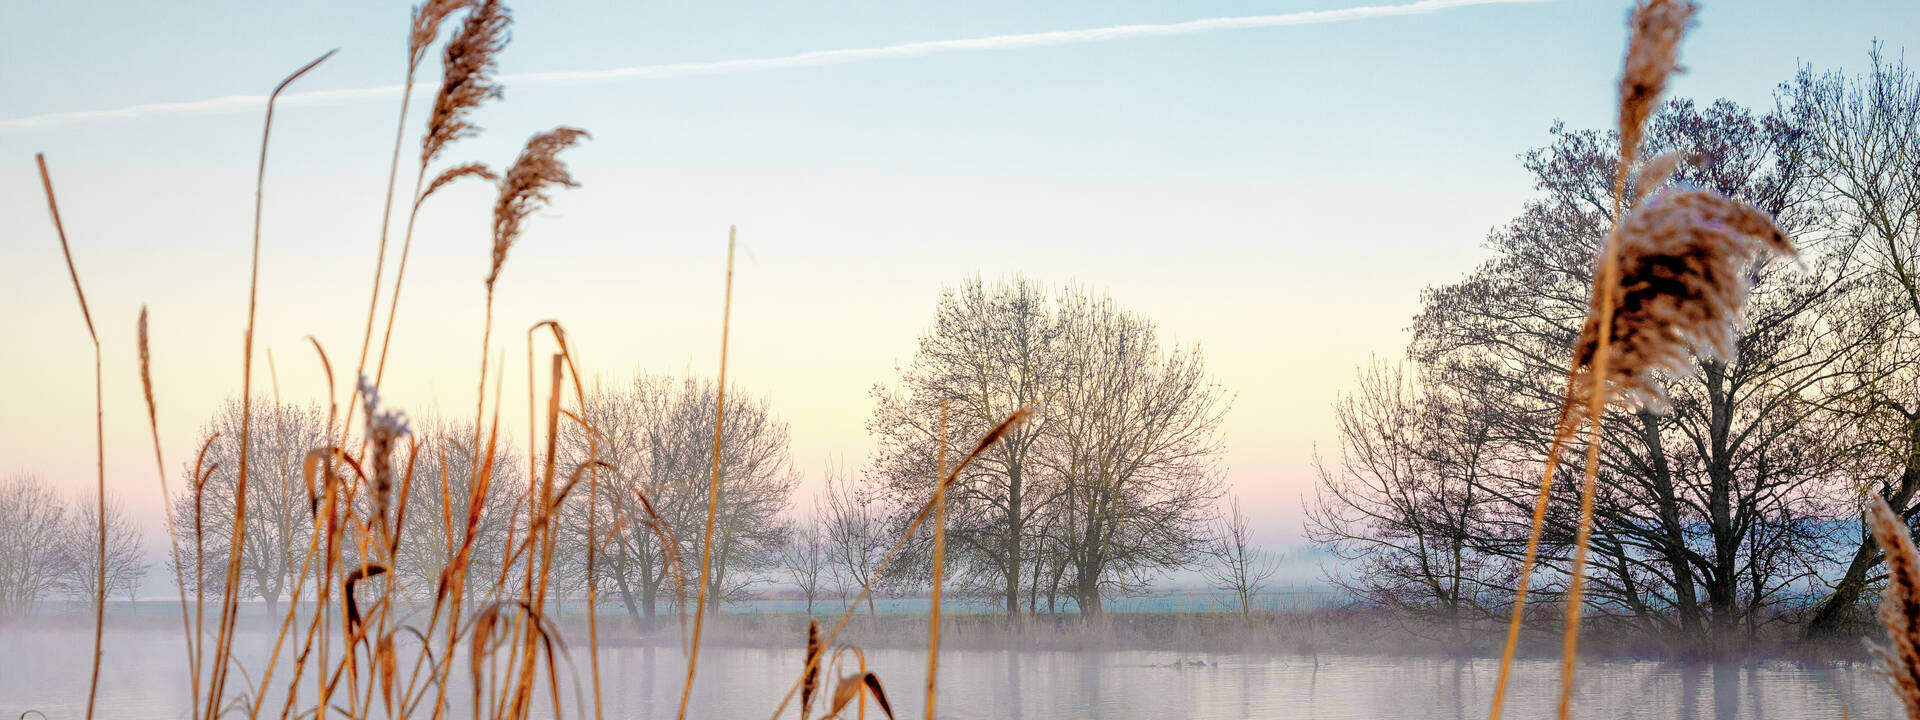 Banks of the Loir during winter © Dorothée Mouraud / Destination Angers